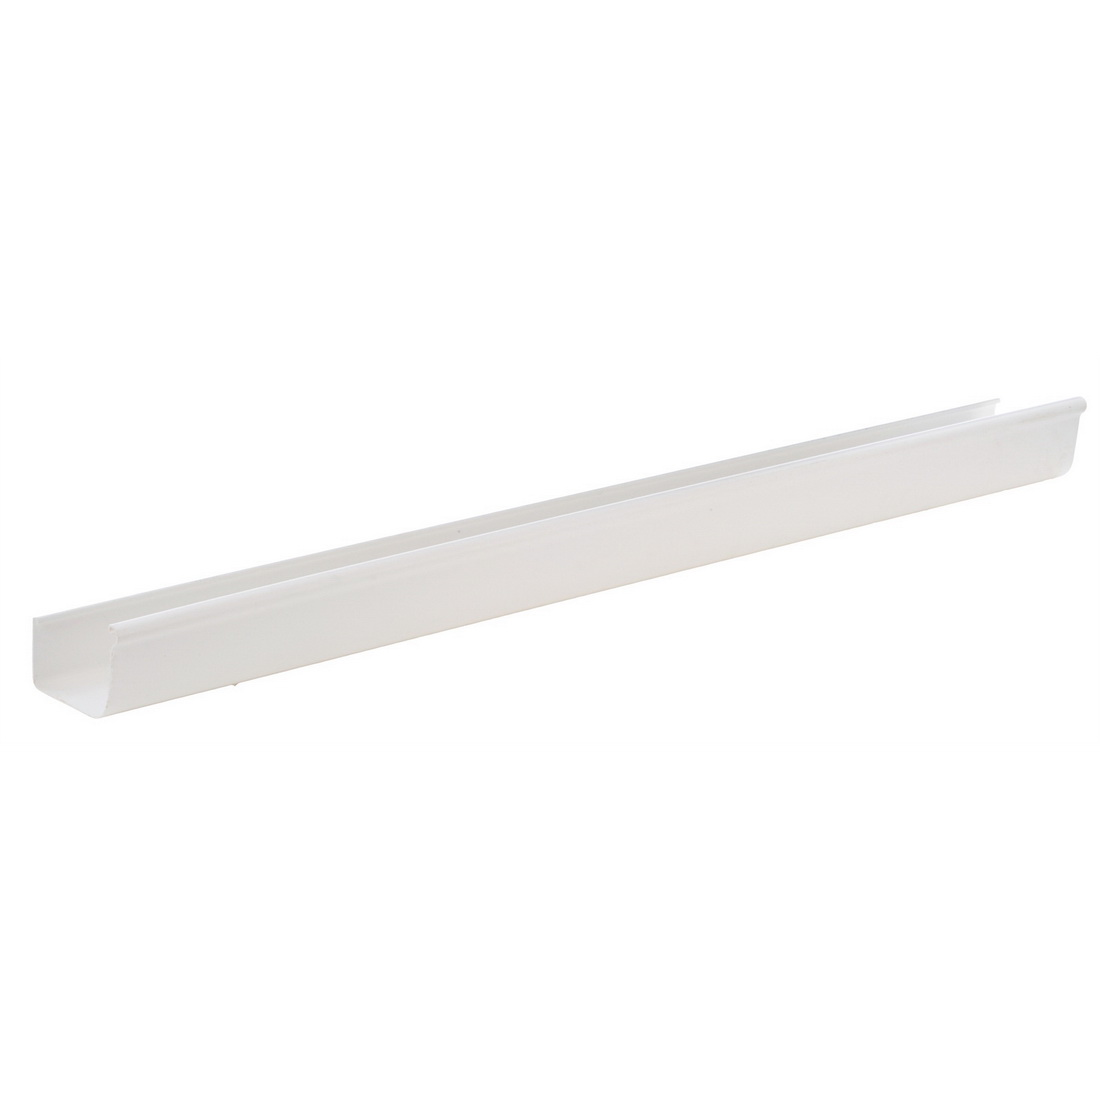 StormCold Spouting 3m x 123mm Unplasticised PVC White